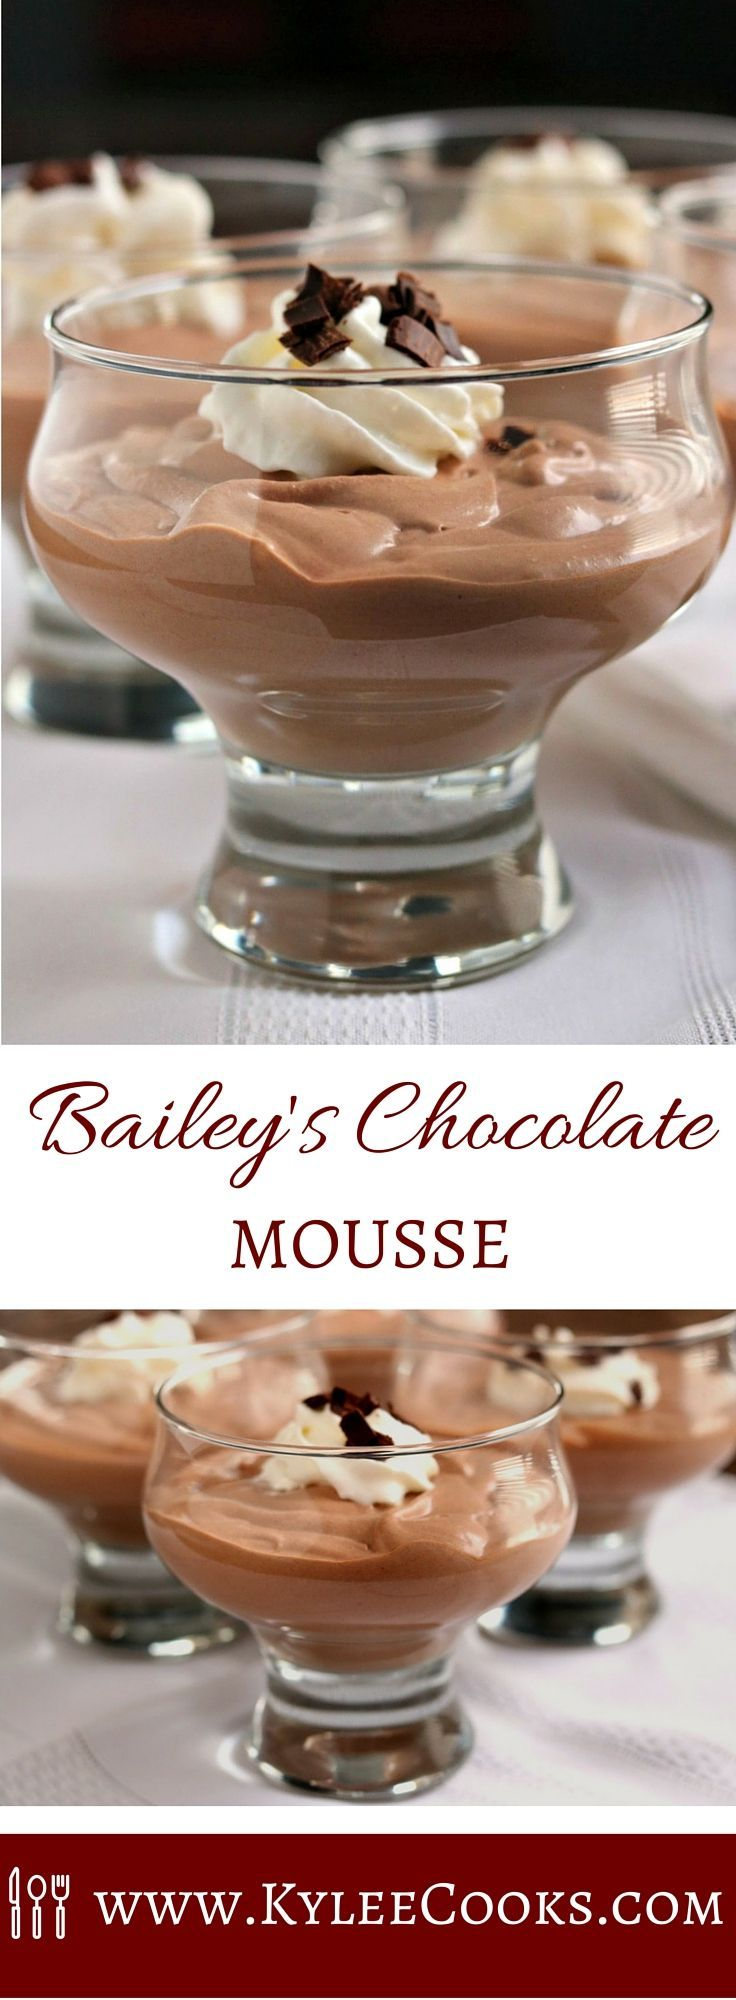 Bailey 39 s chocolate mousse recipe mouthwatering - Olive garden bailey s crossroads ...